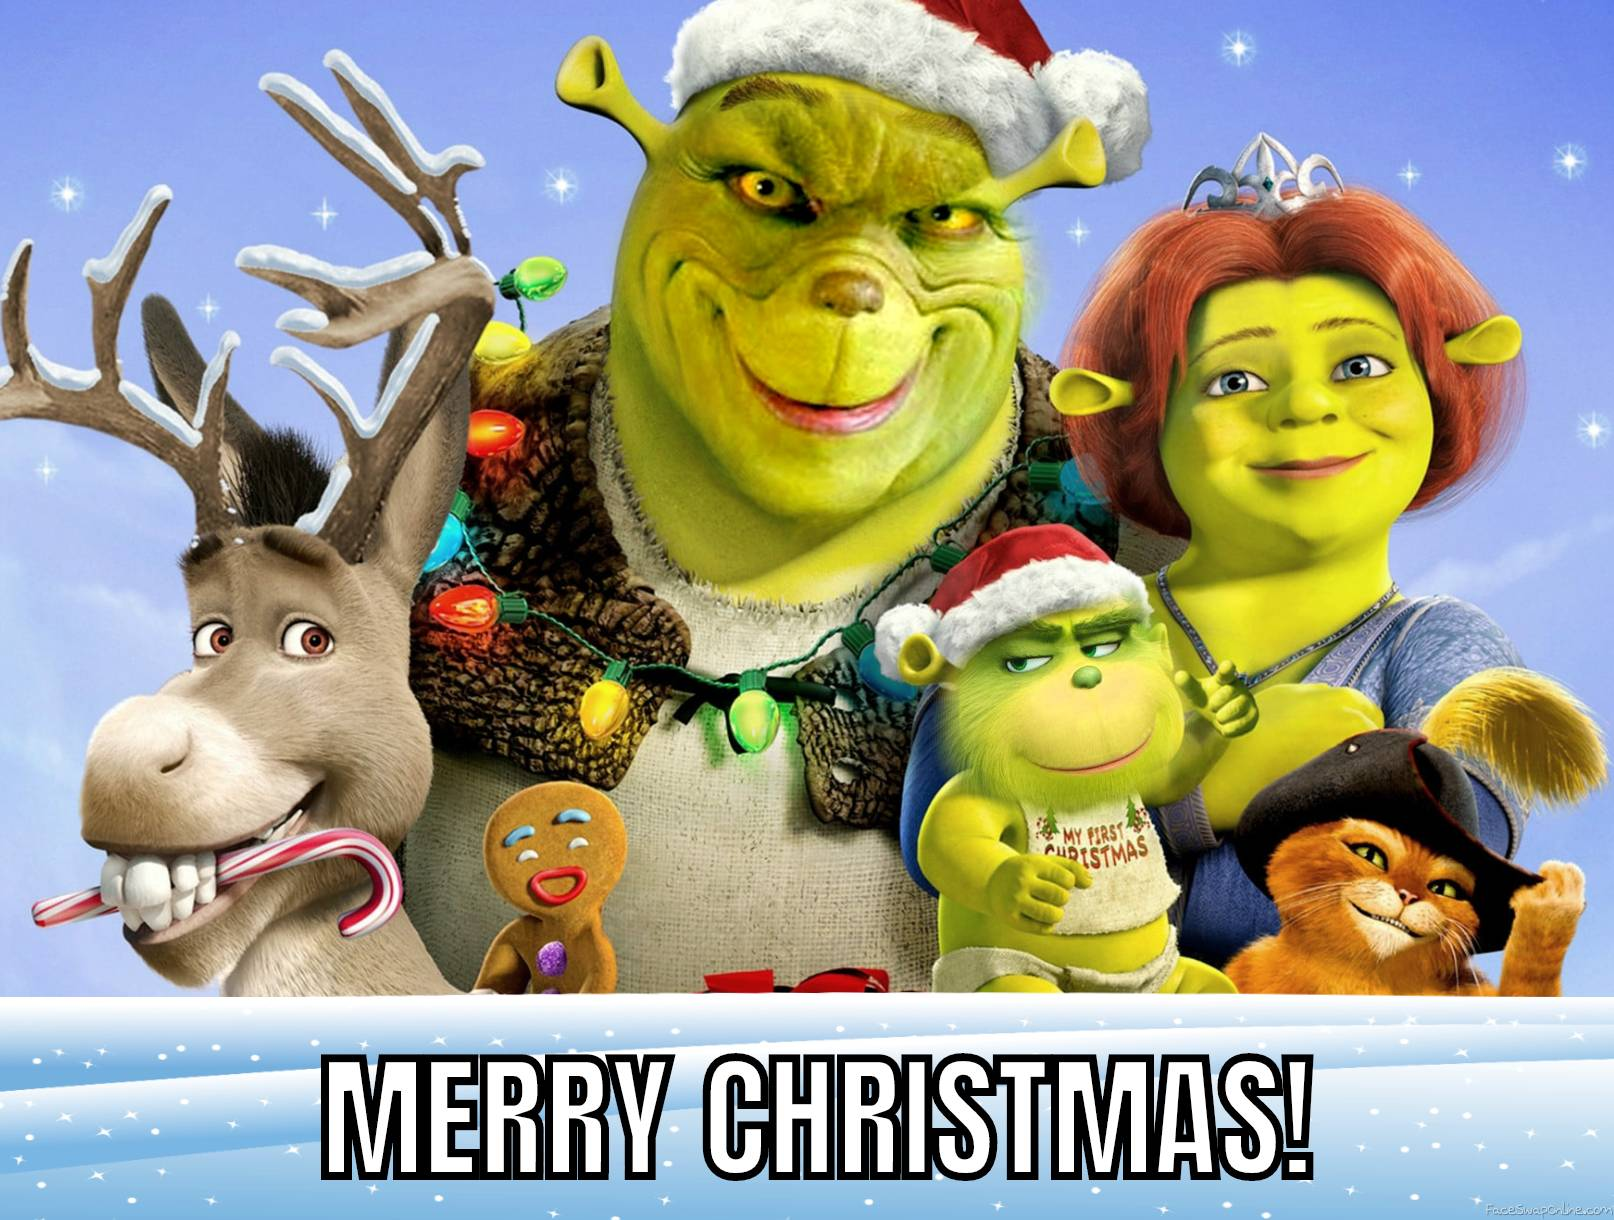 Shrek Holiday Card